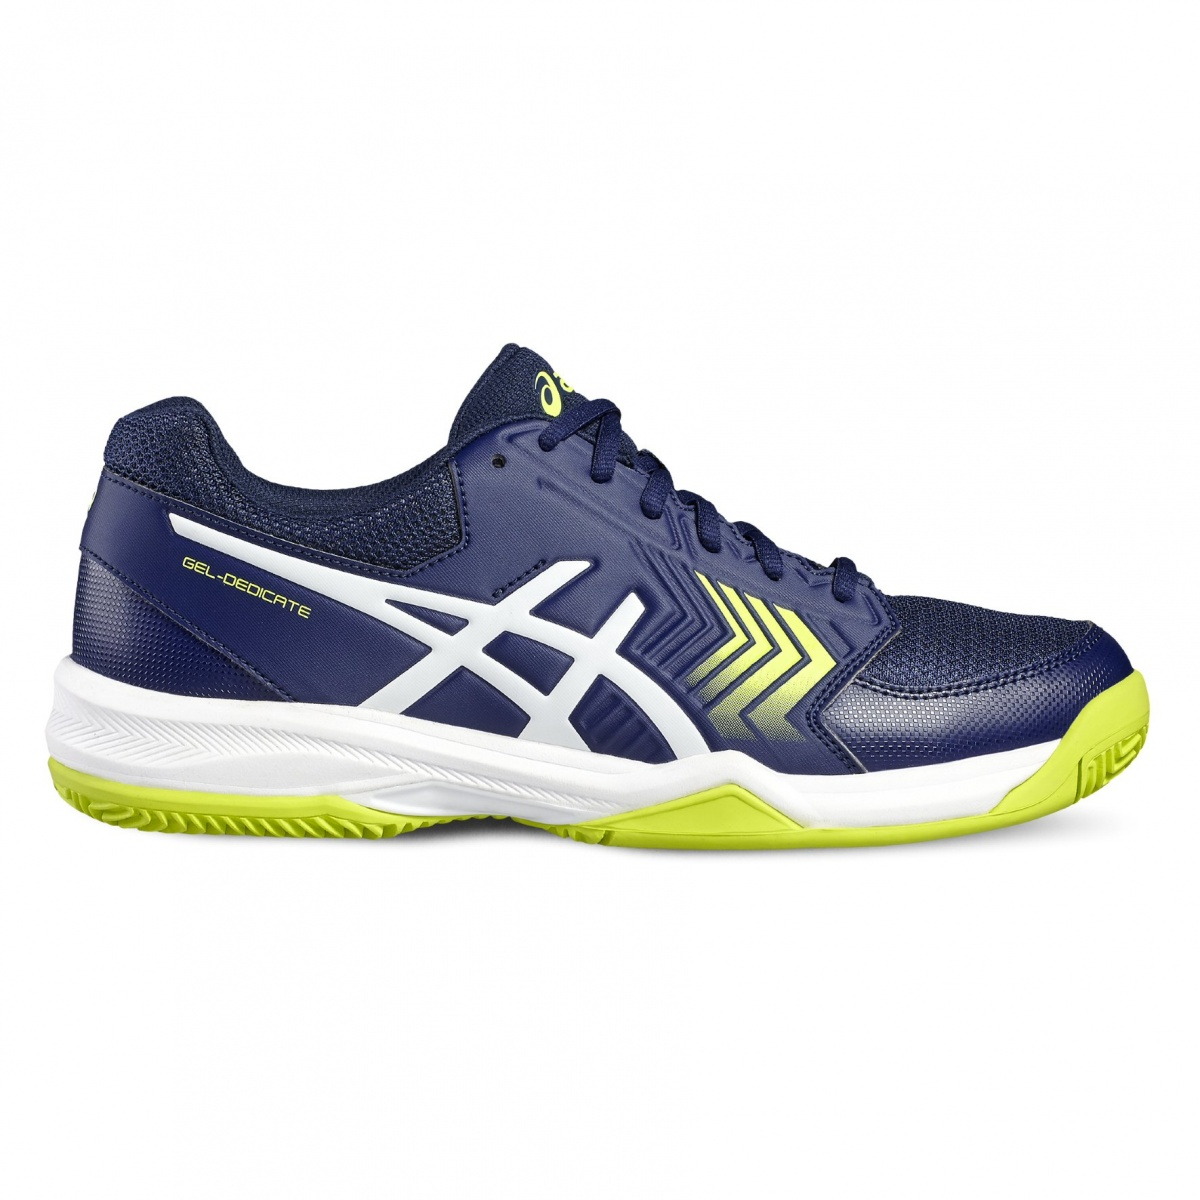 Asics Herren Gel-Dedicate 5 Tennisschuhe, Blau (Indigo Blue/White/Safety Yellow), 42.5 EU